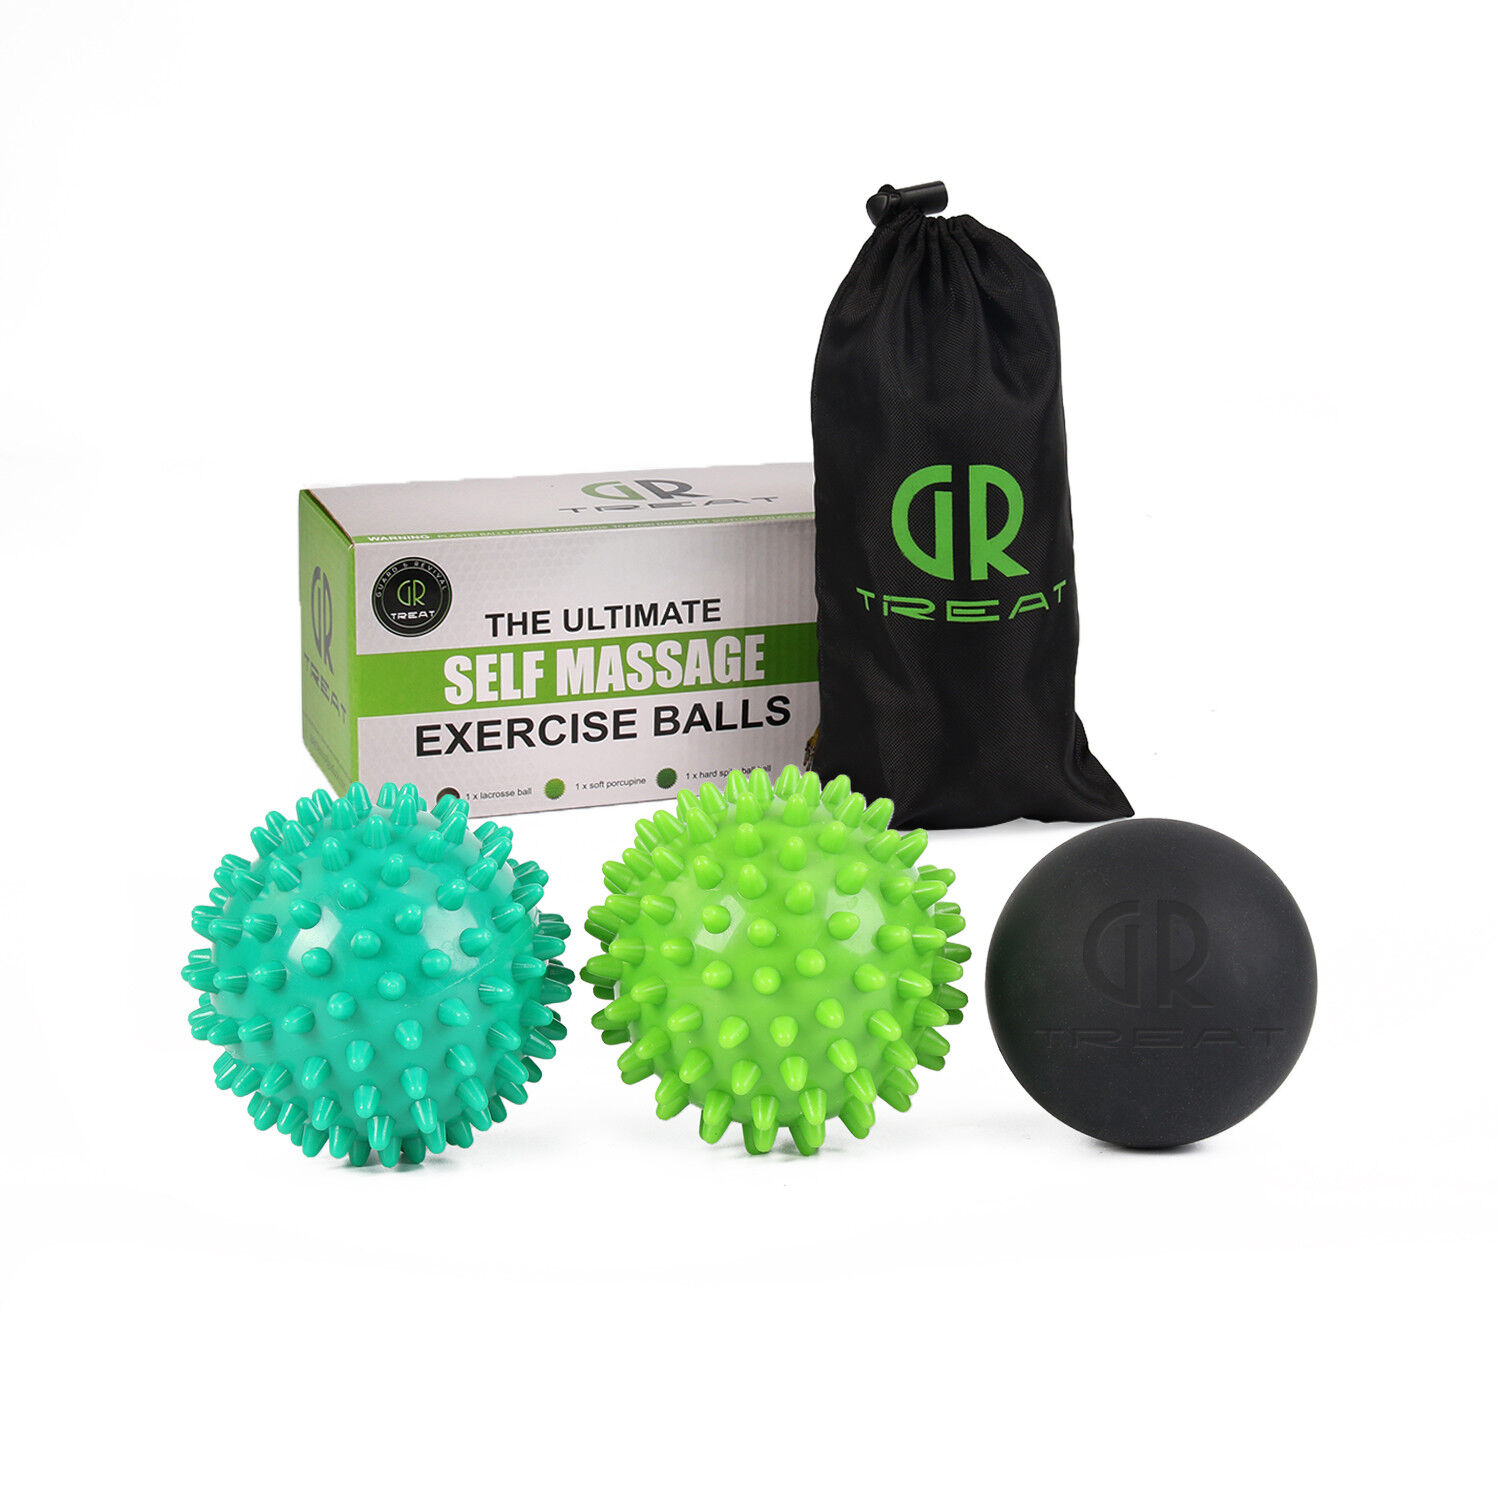 Relax Myofascial Trigger Point Mobility Massage Ball Peanut Lacrosse Ball GR